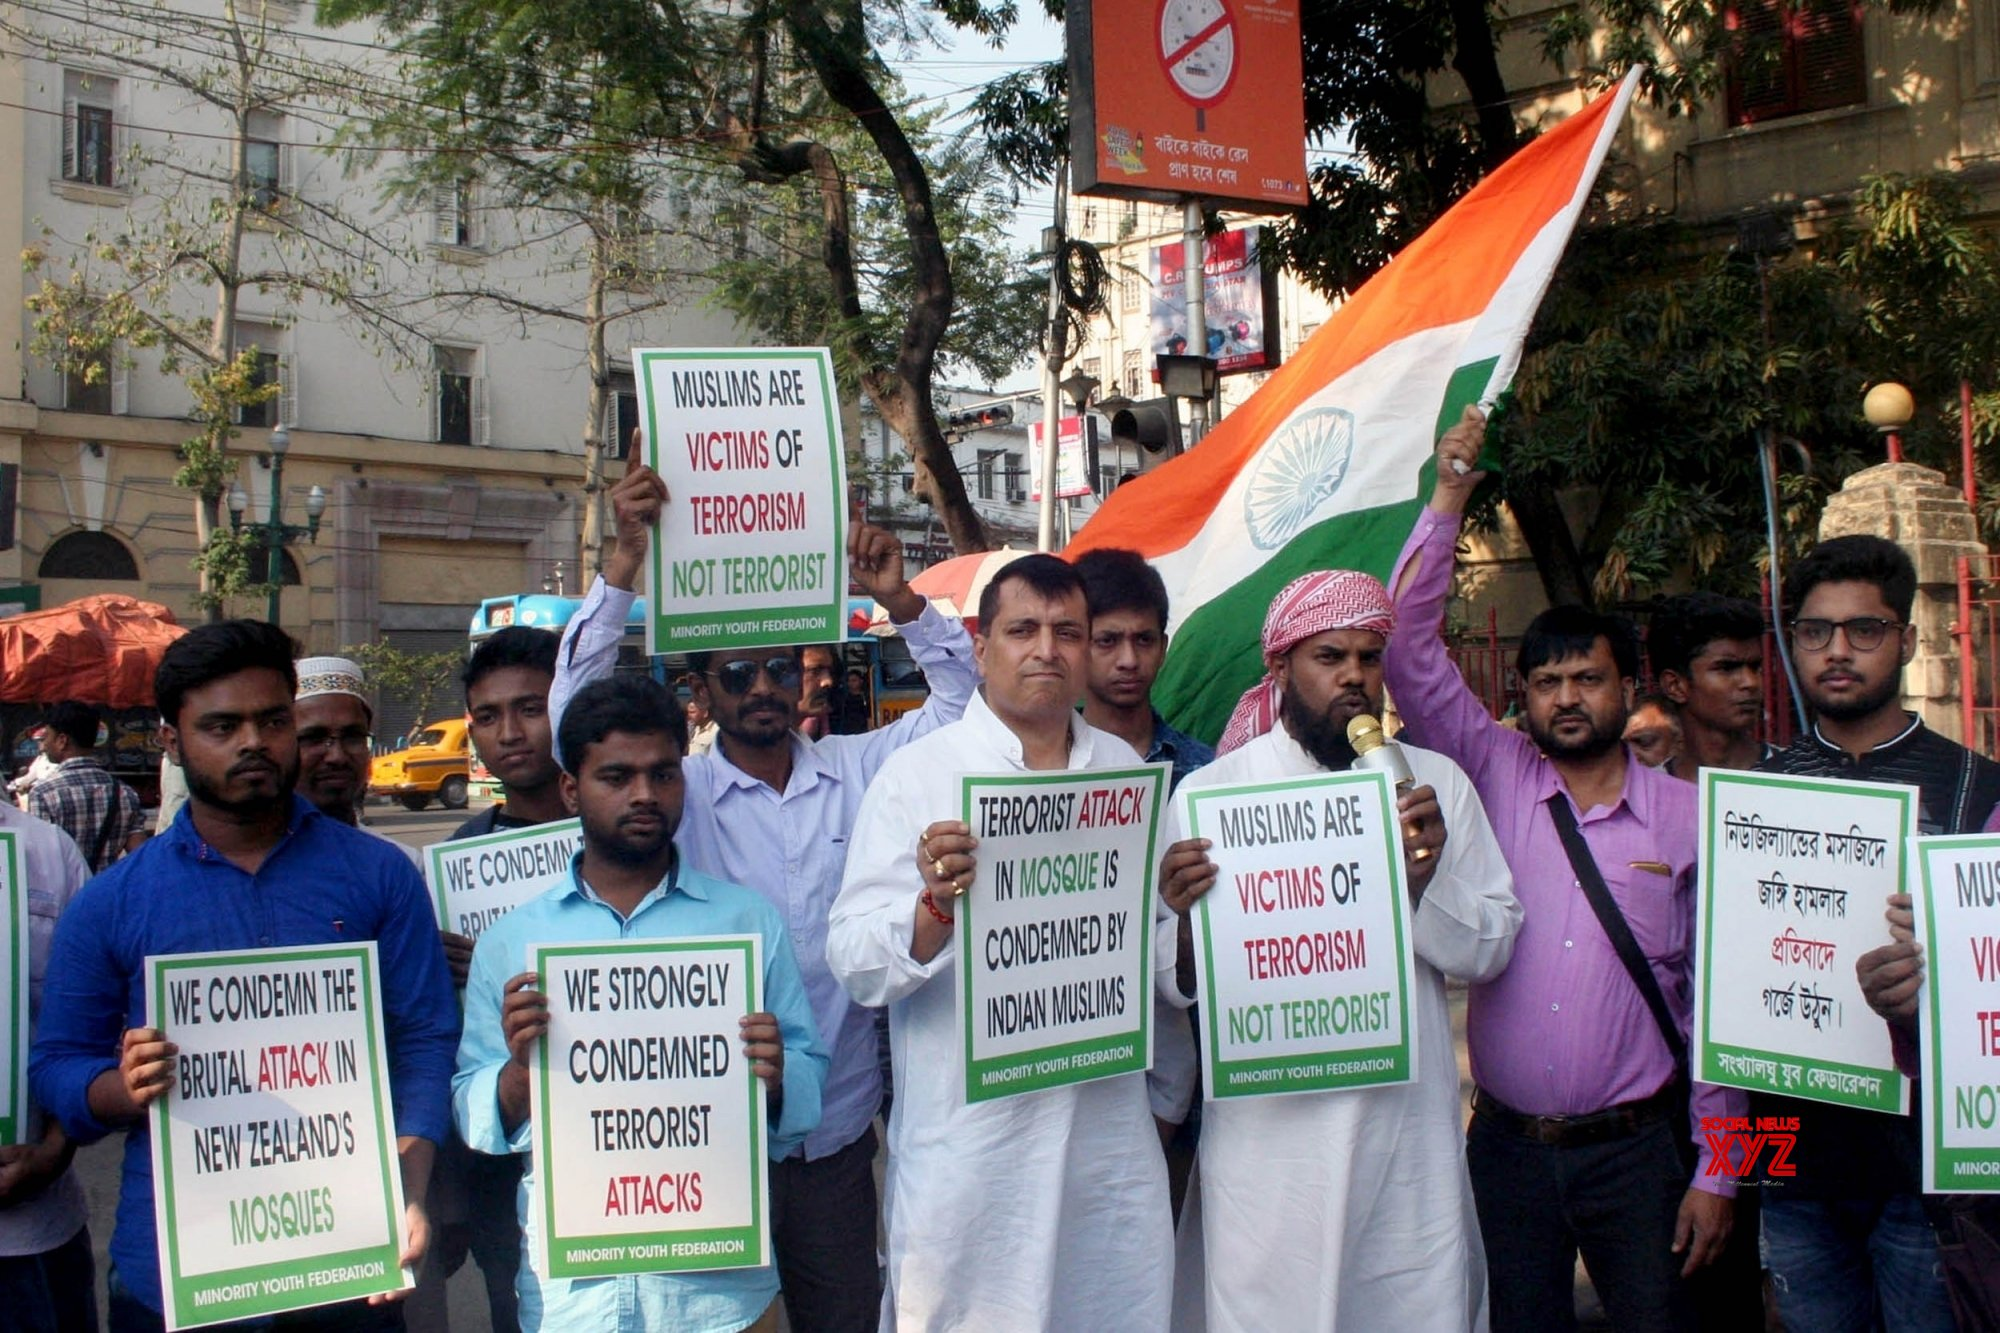 Kolkata: Minority Youth Federation's demonstration against New Zealand mosque attack #Gallery